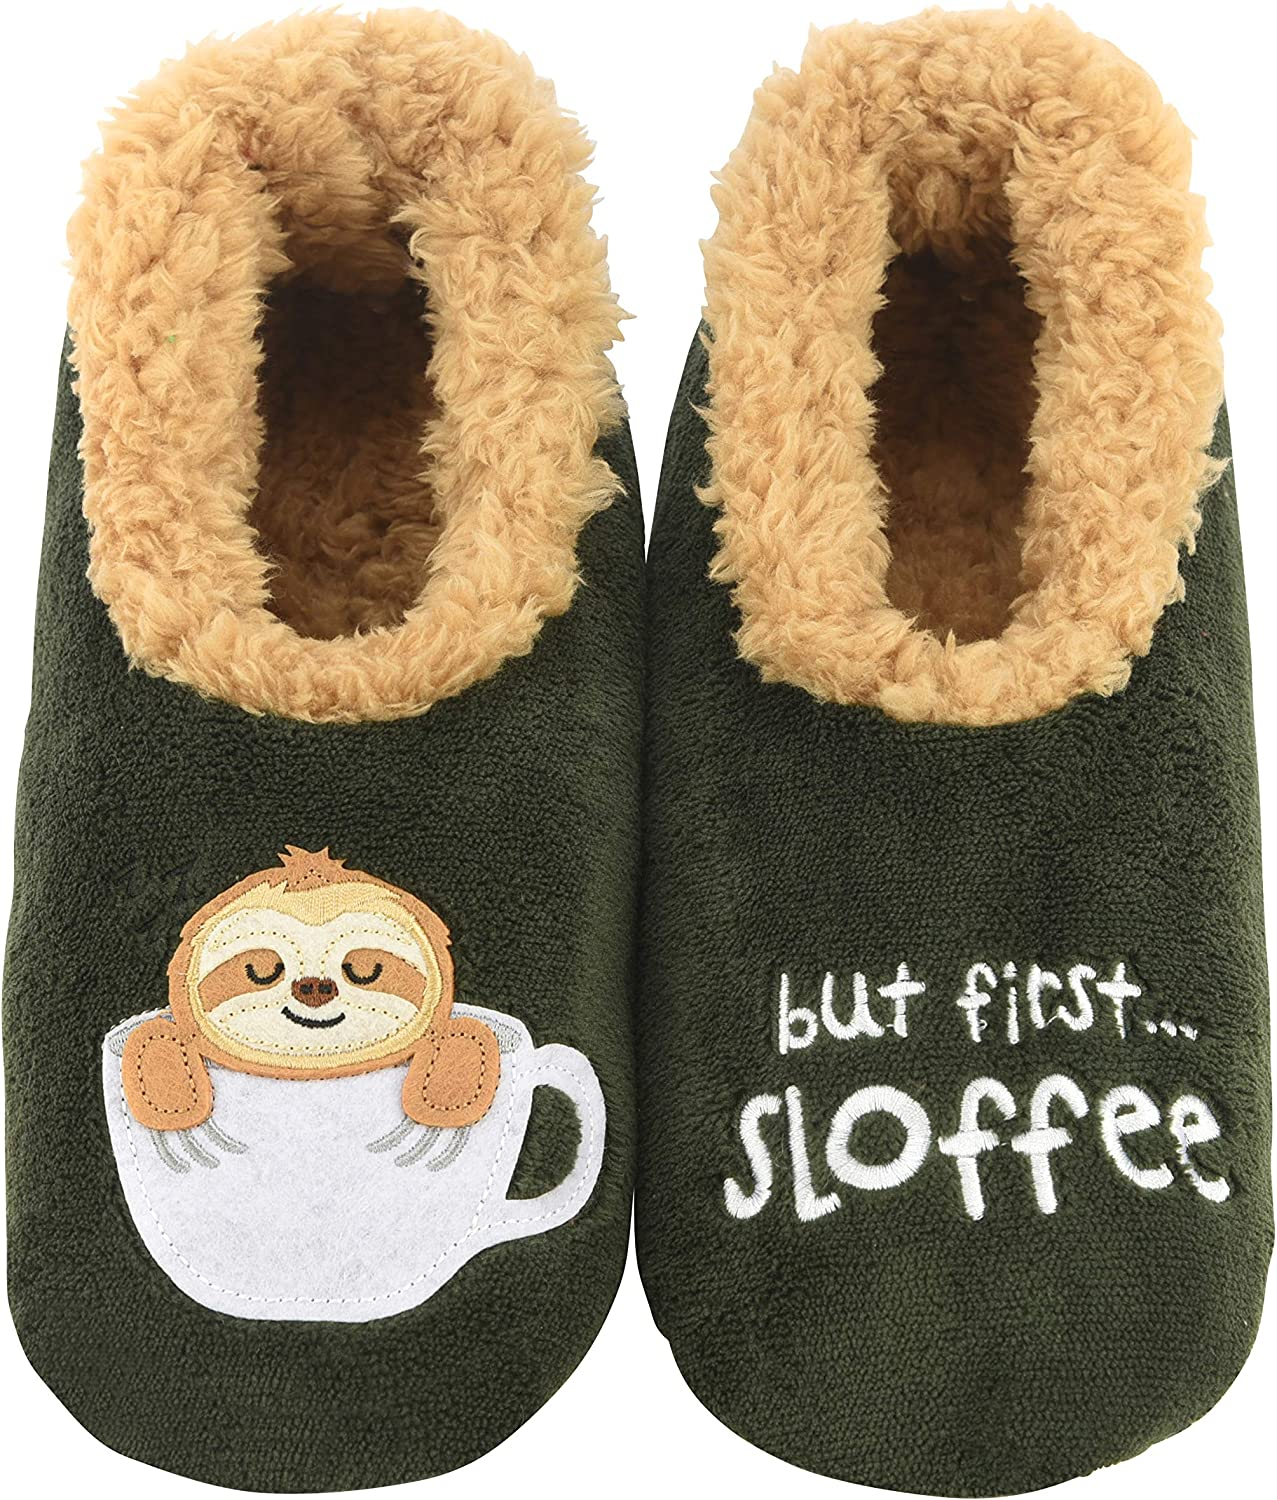 Snoozies Slippers for Women - Pairables Womens Slippers - But First Sloffee